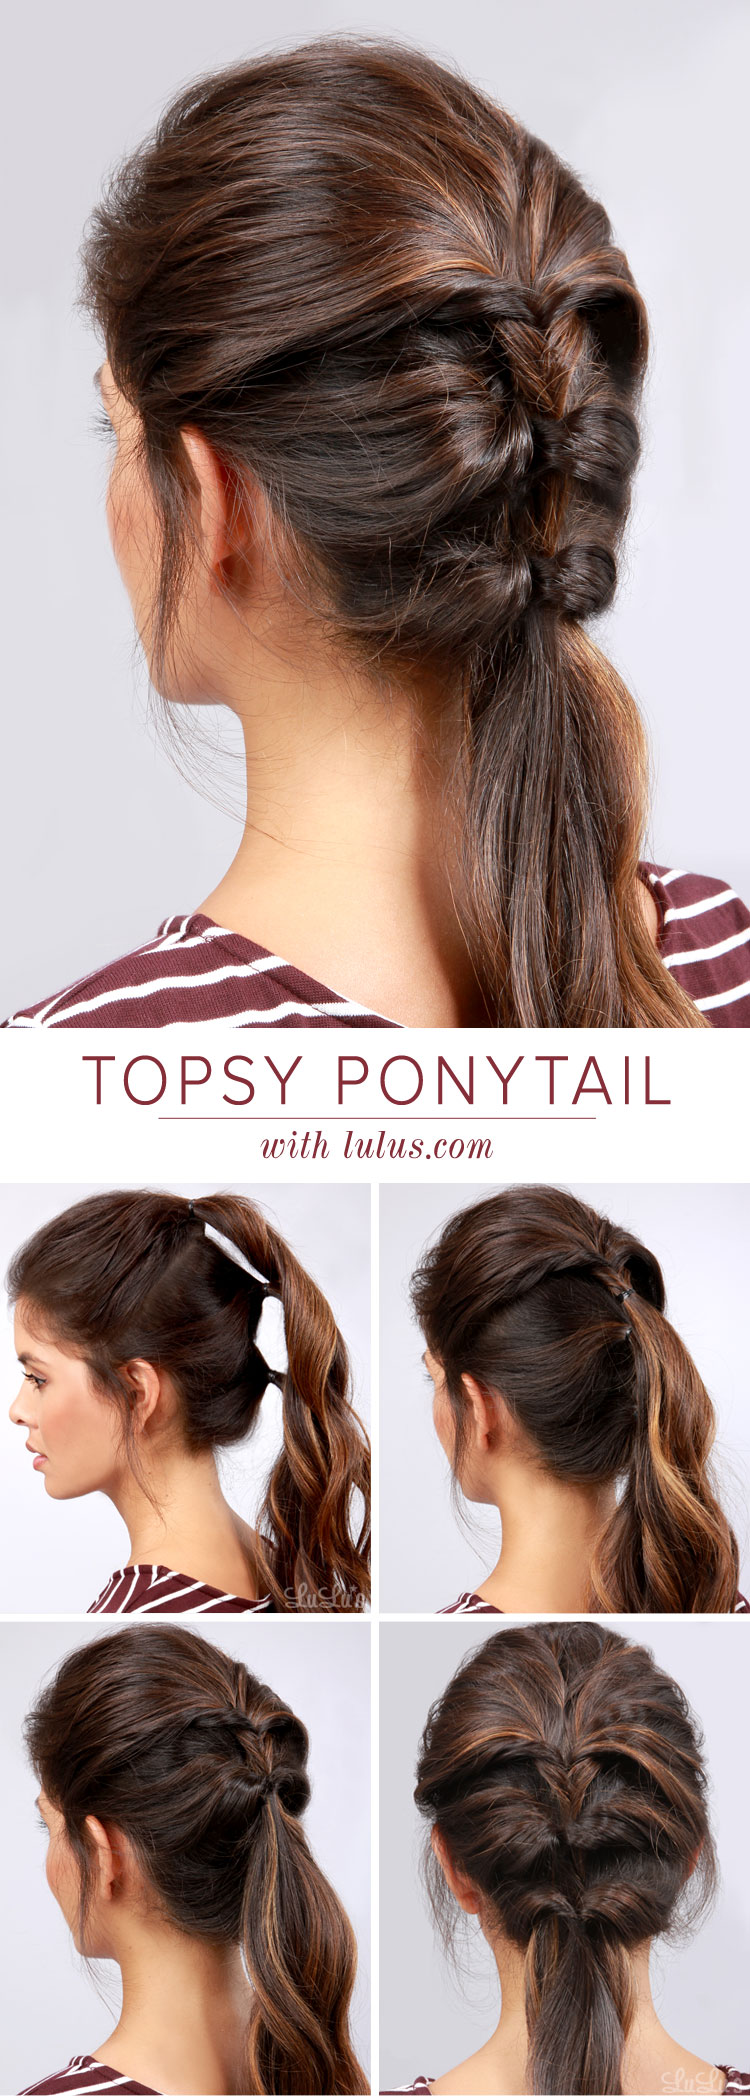 Cute do it yourself ponytail hairstyles hrotelrehberii 15 stylish by hairstyle tutorials you must see solutioingenieria Image collections